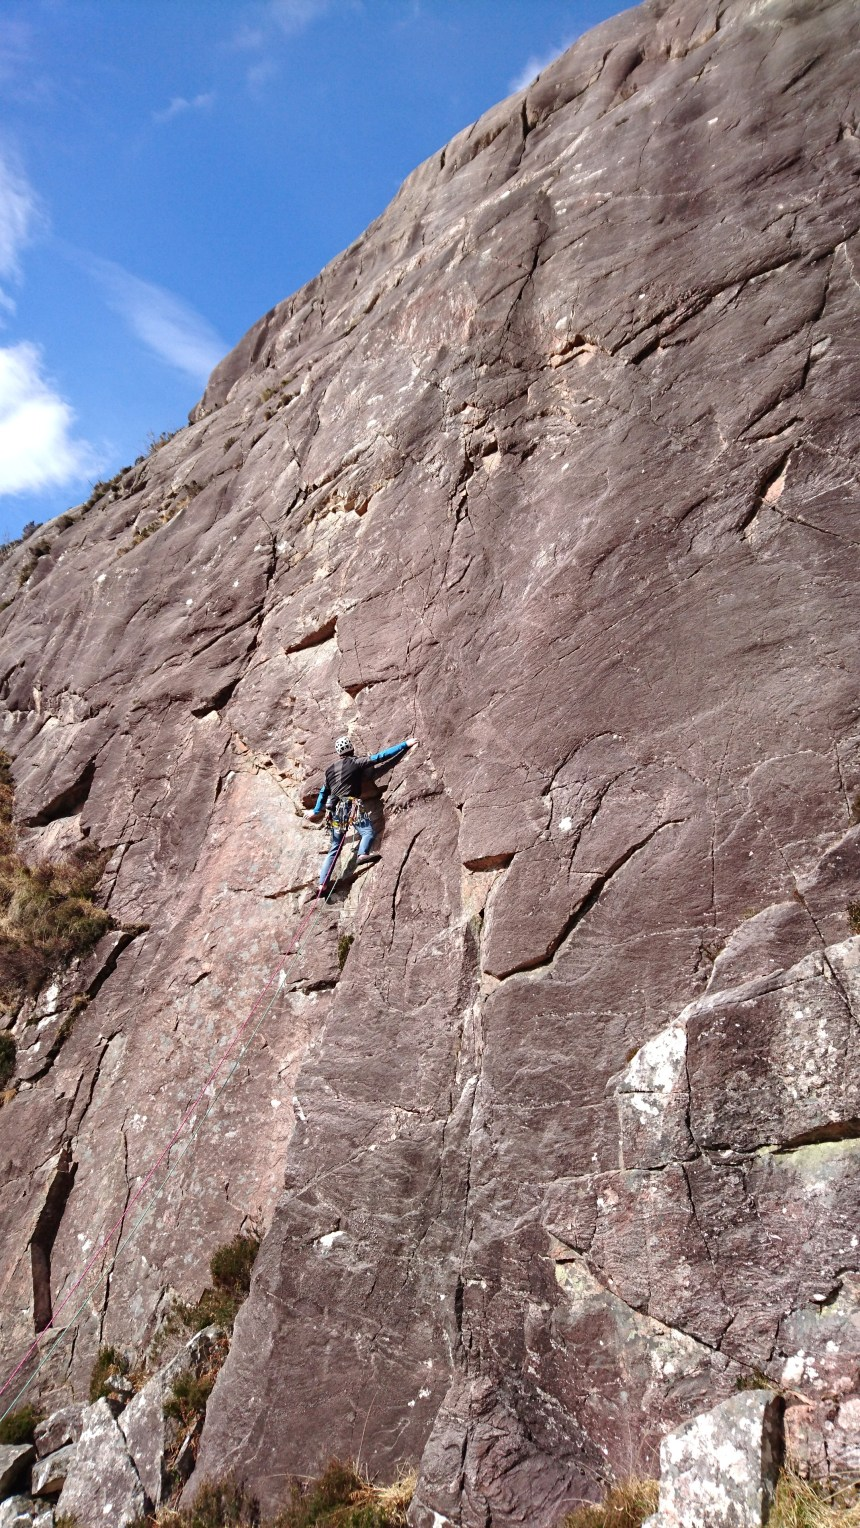 Joe keeping cool on P1 (E2,5c) 'Northumberland Wall'